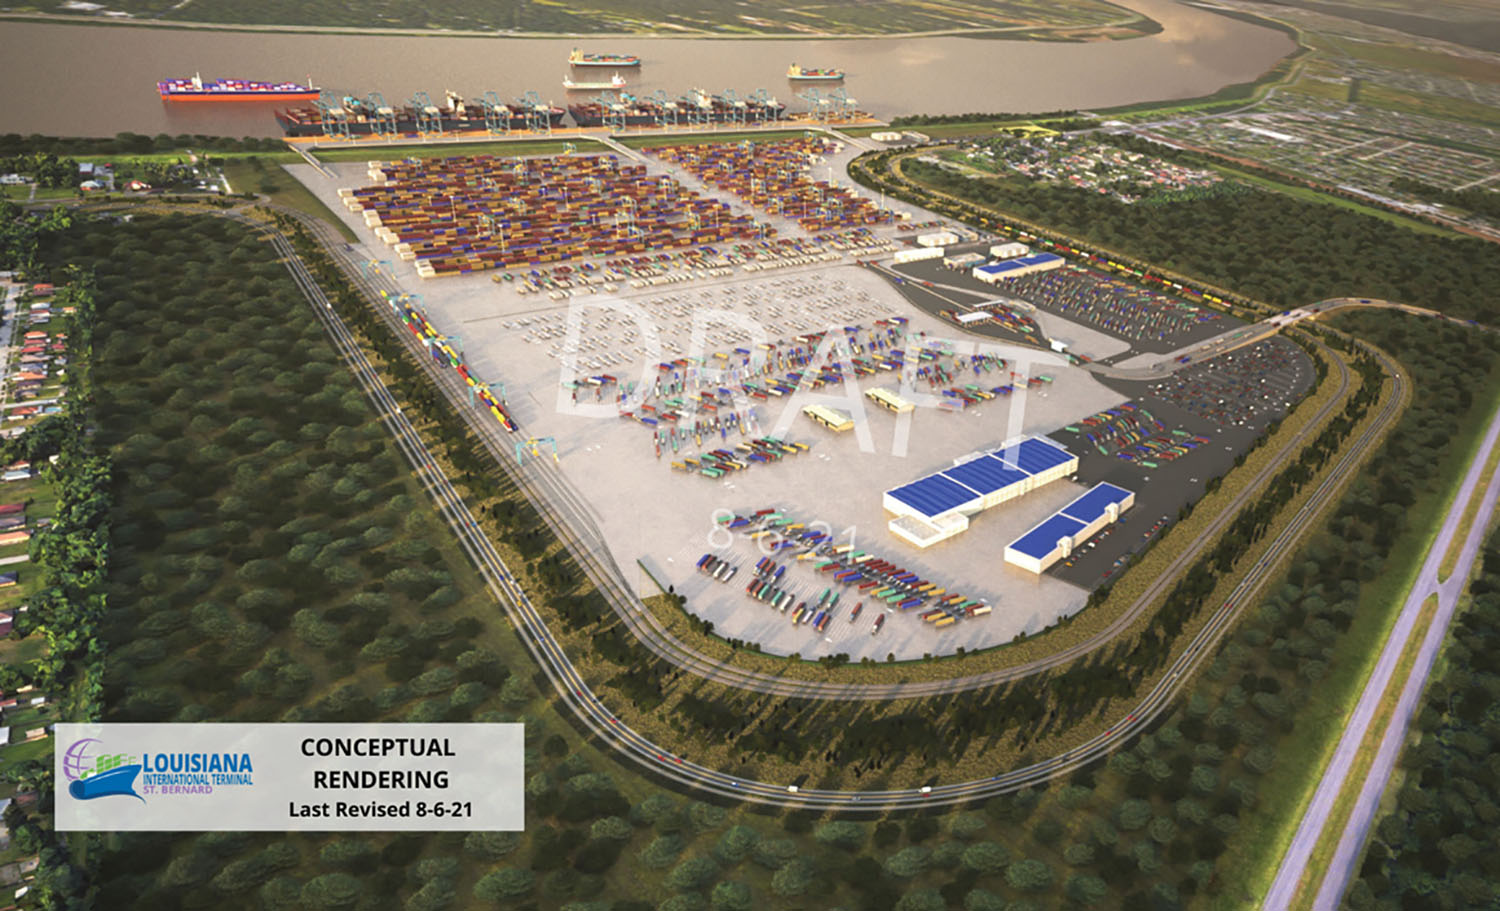 Conceptual rendering of new Louisiana Intermodal Terminal. (courtesy of Port of New Orleans)